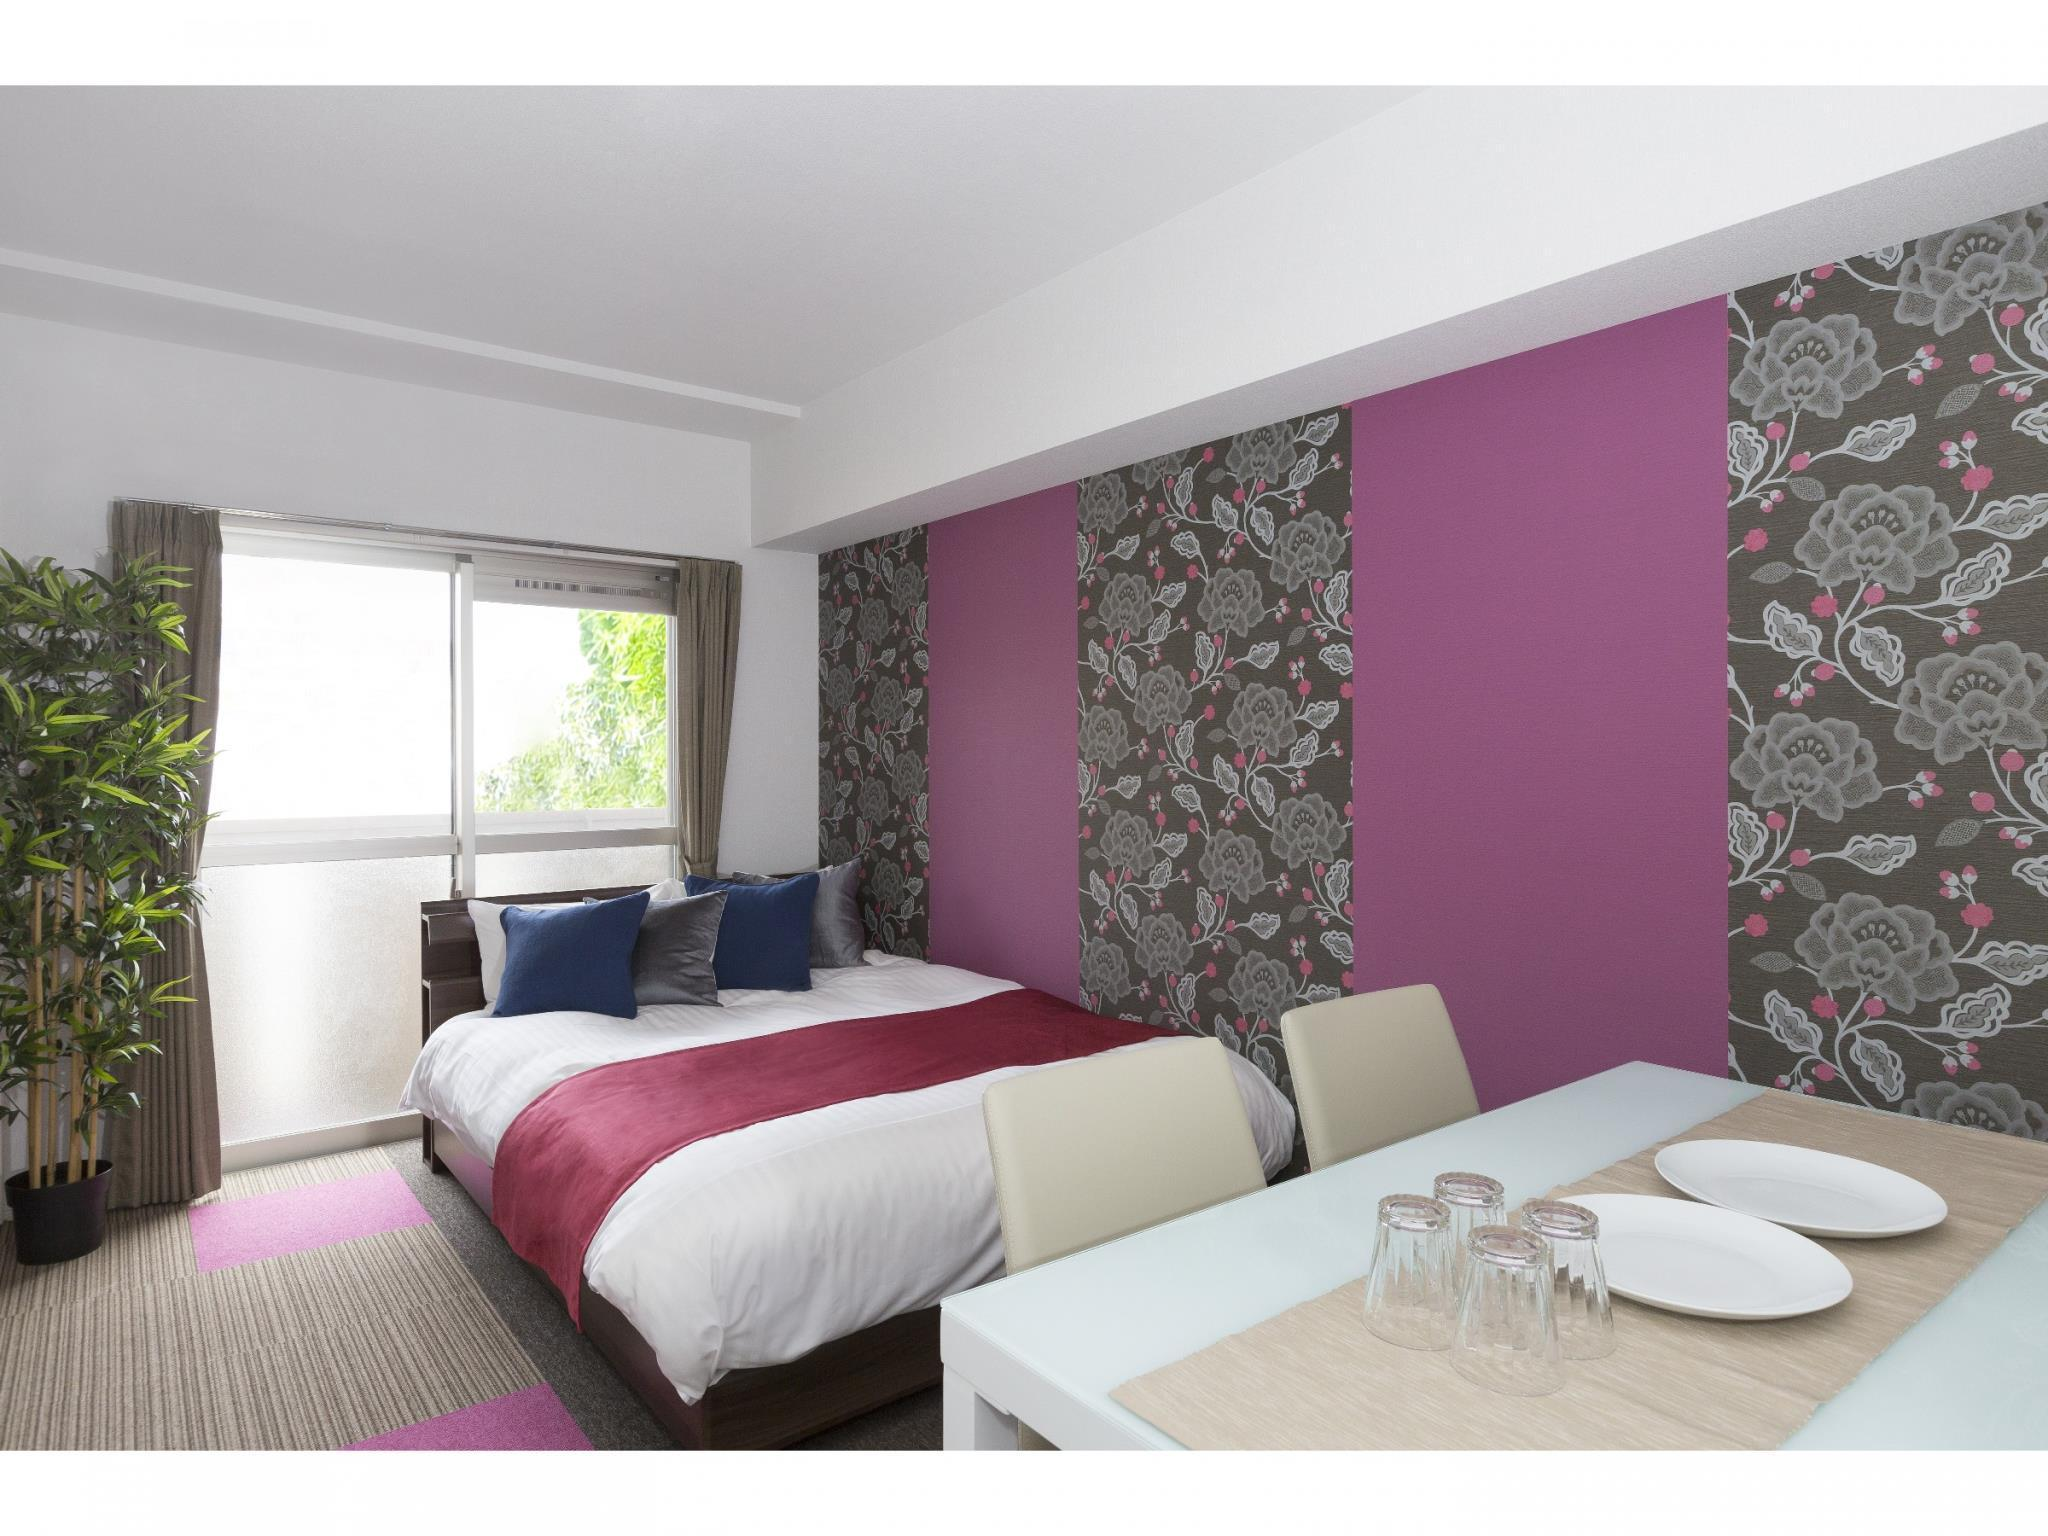 Habitació Grand Doble – Per a 4 persones (Grand Double Room for 4 People)